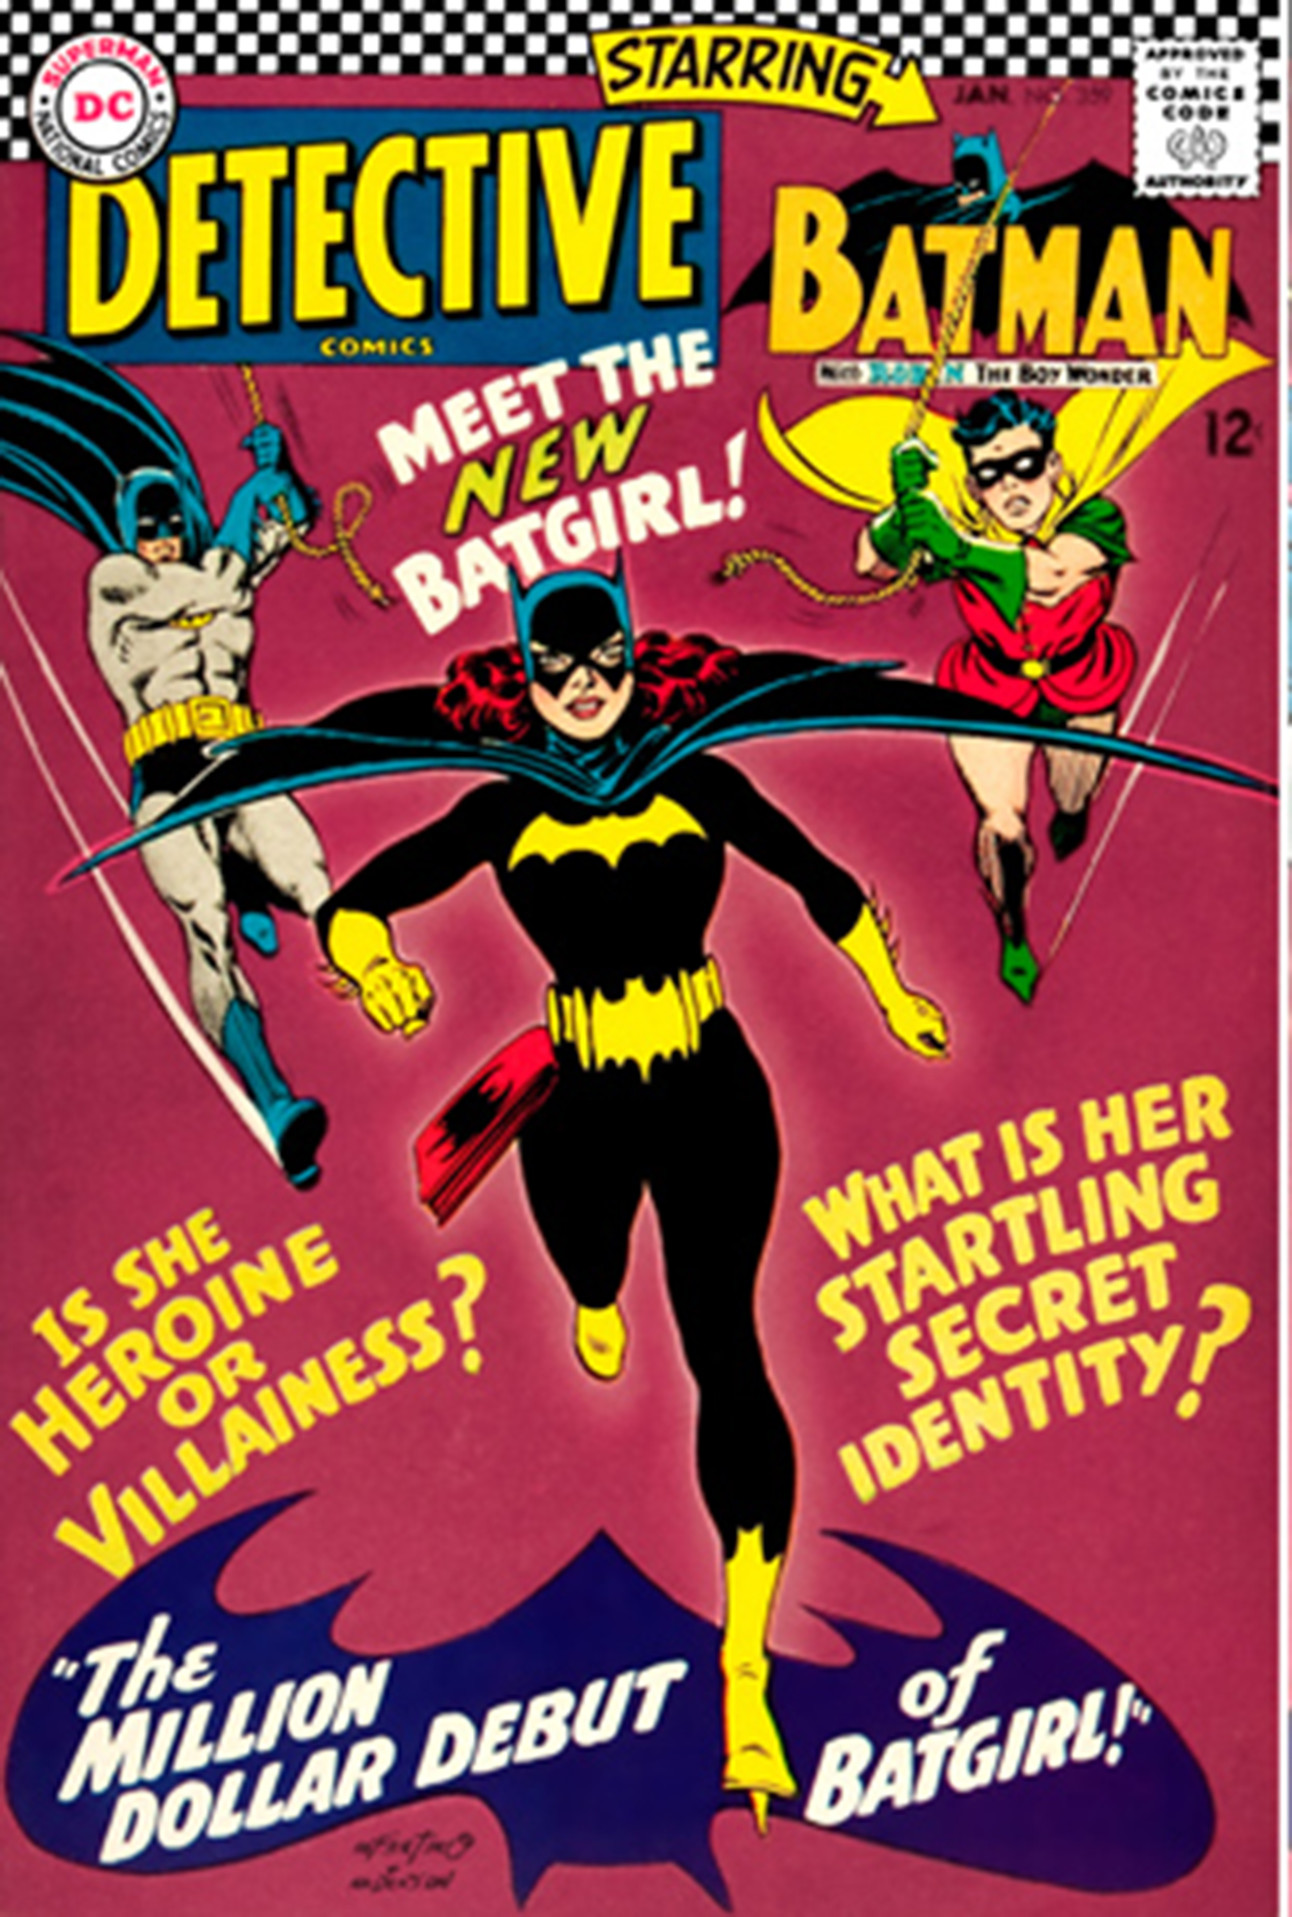 batgirl and robin start dating